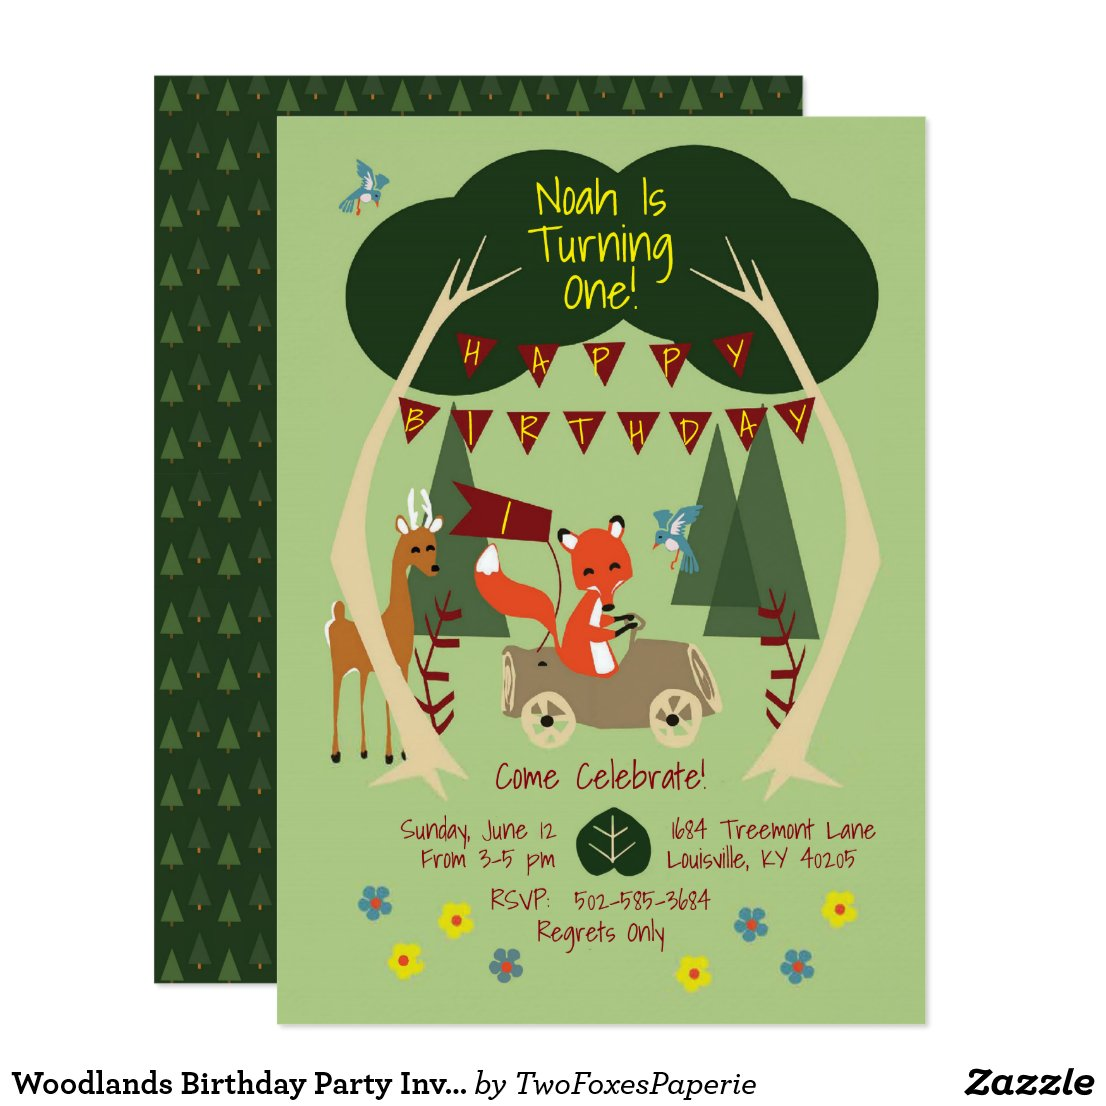 Woodlands Birthday Party Invitation